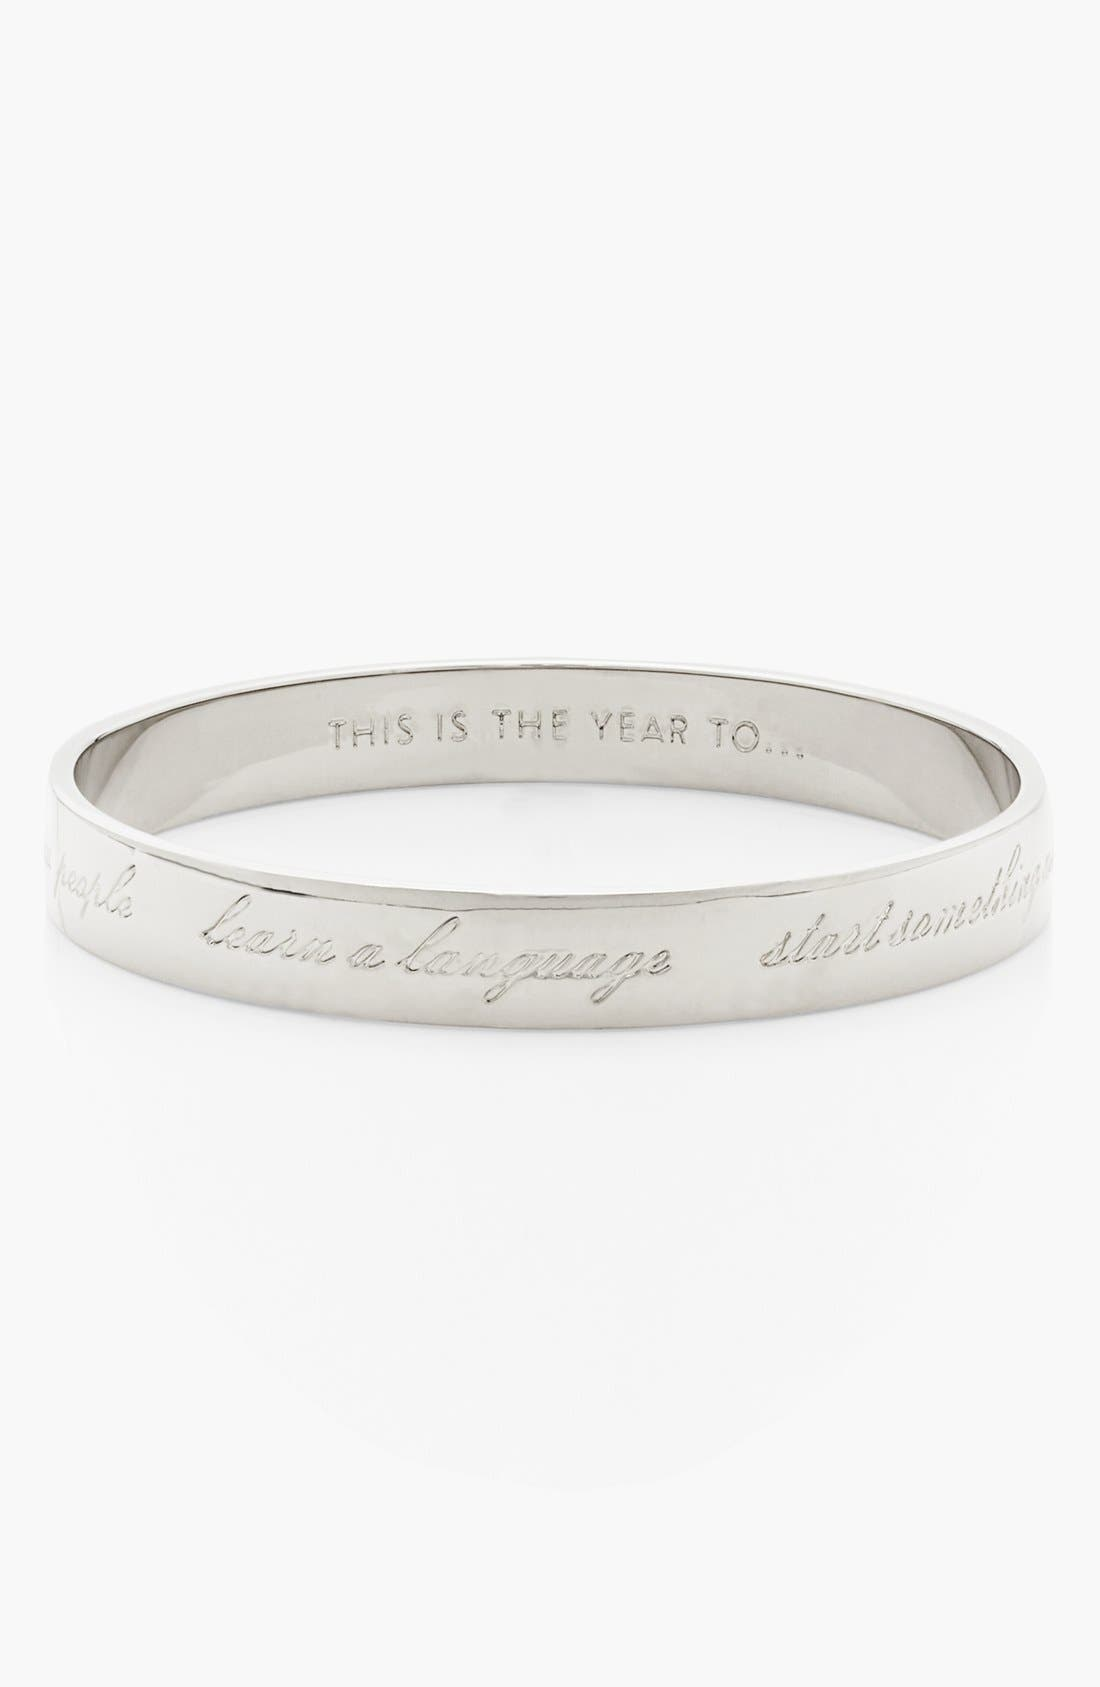 Alternate Image 1 Selected - kate spade new york 'idiom - this is the year to...' thin bangle